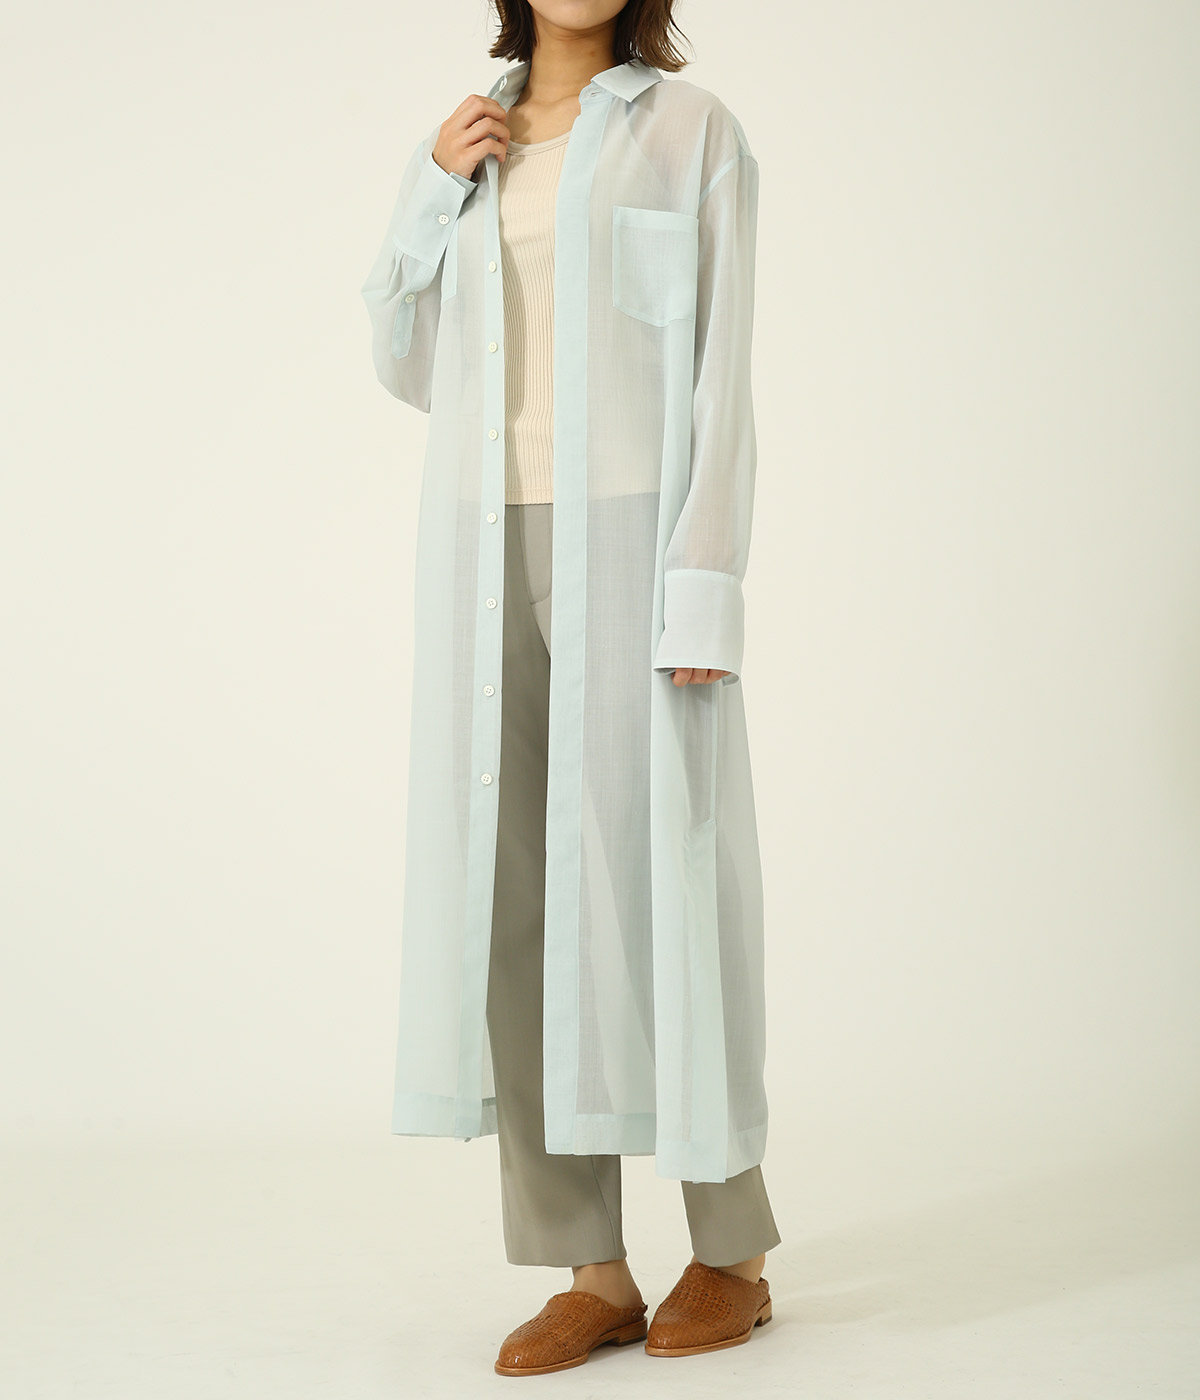 【レディース】WOOL POLYESTER SHEER CLOTH SHIRTS ONE-PIECE